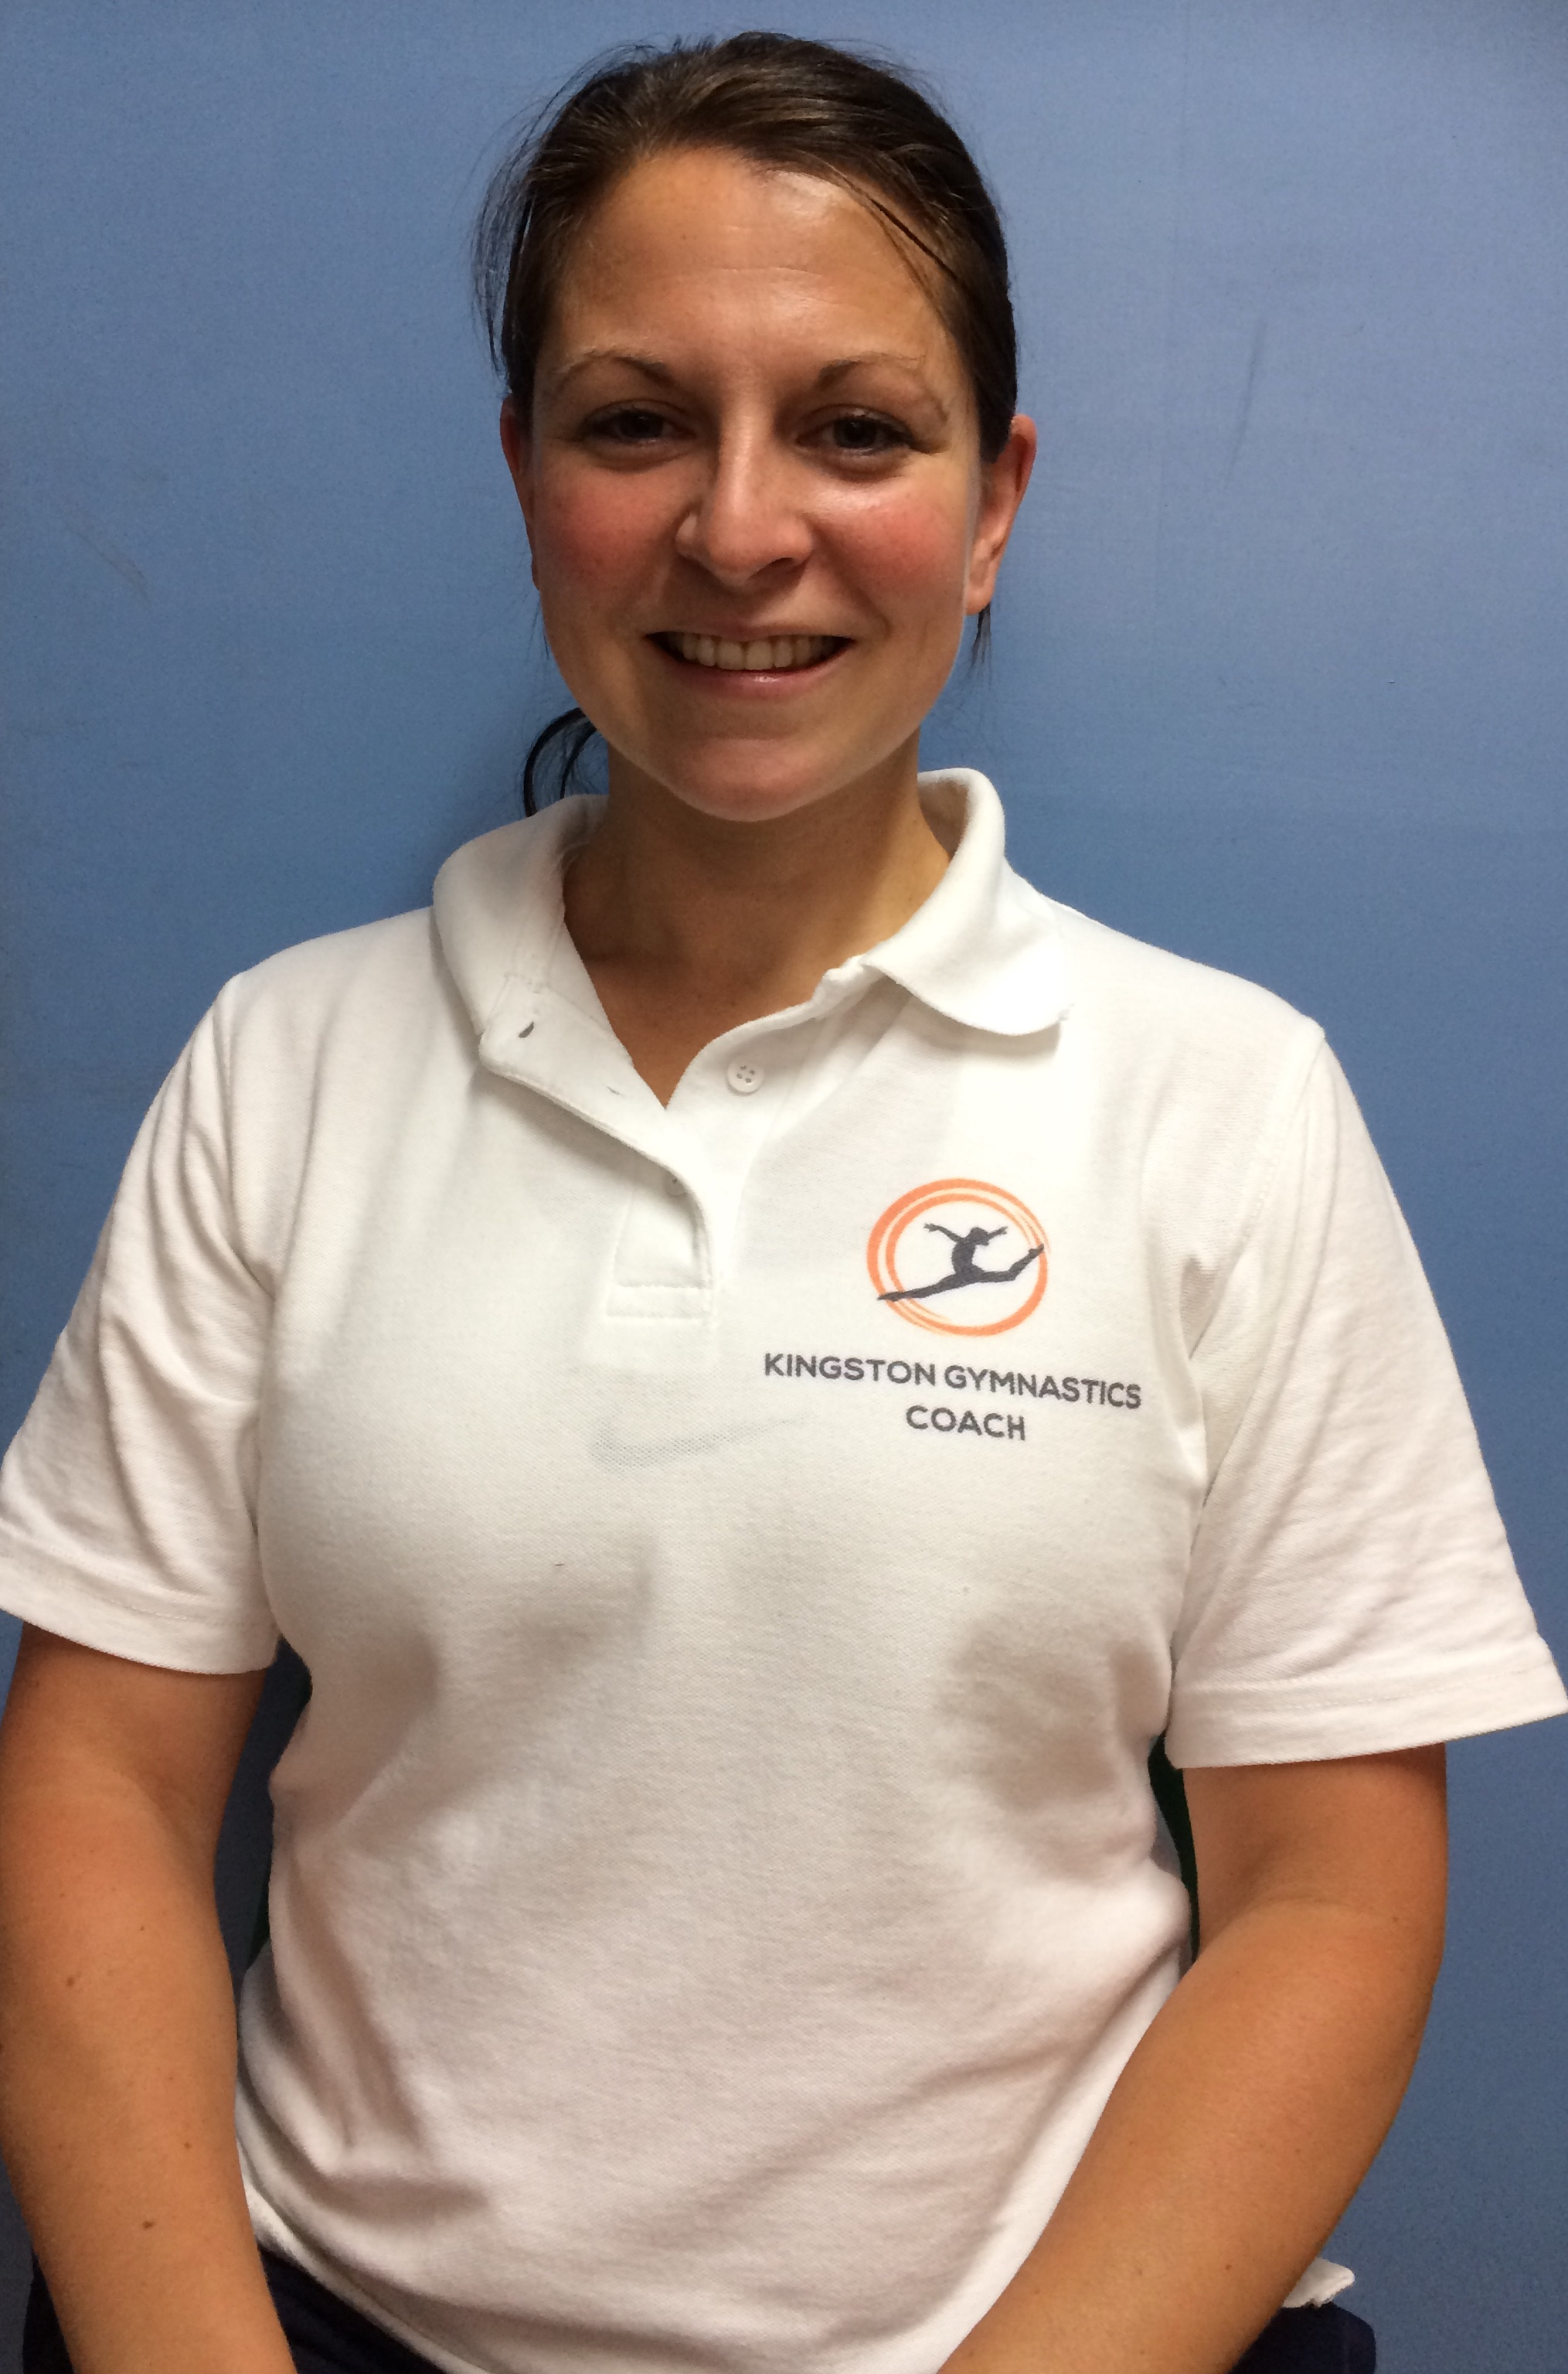 Rebecca - Head coach. - Qualifications: Level 3 Gymnastics and Trampoline Coach, Qualified PE Teacher, Child Protection and Safeguarding course, British Gymnastics: Time to Listen Course, DBS Checked, 3 Day First Aid at Work Certificate